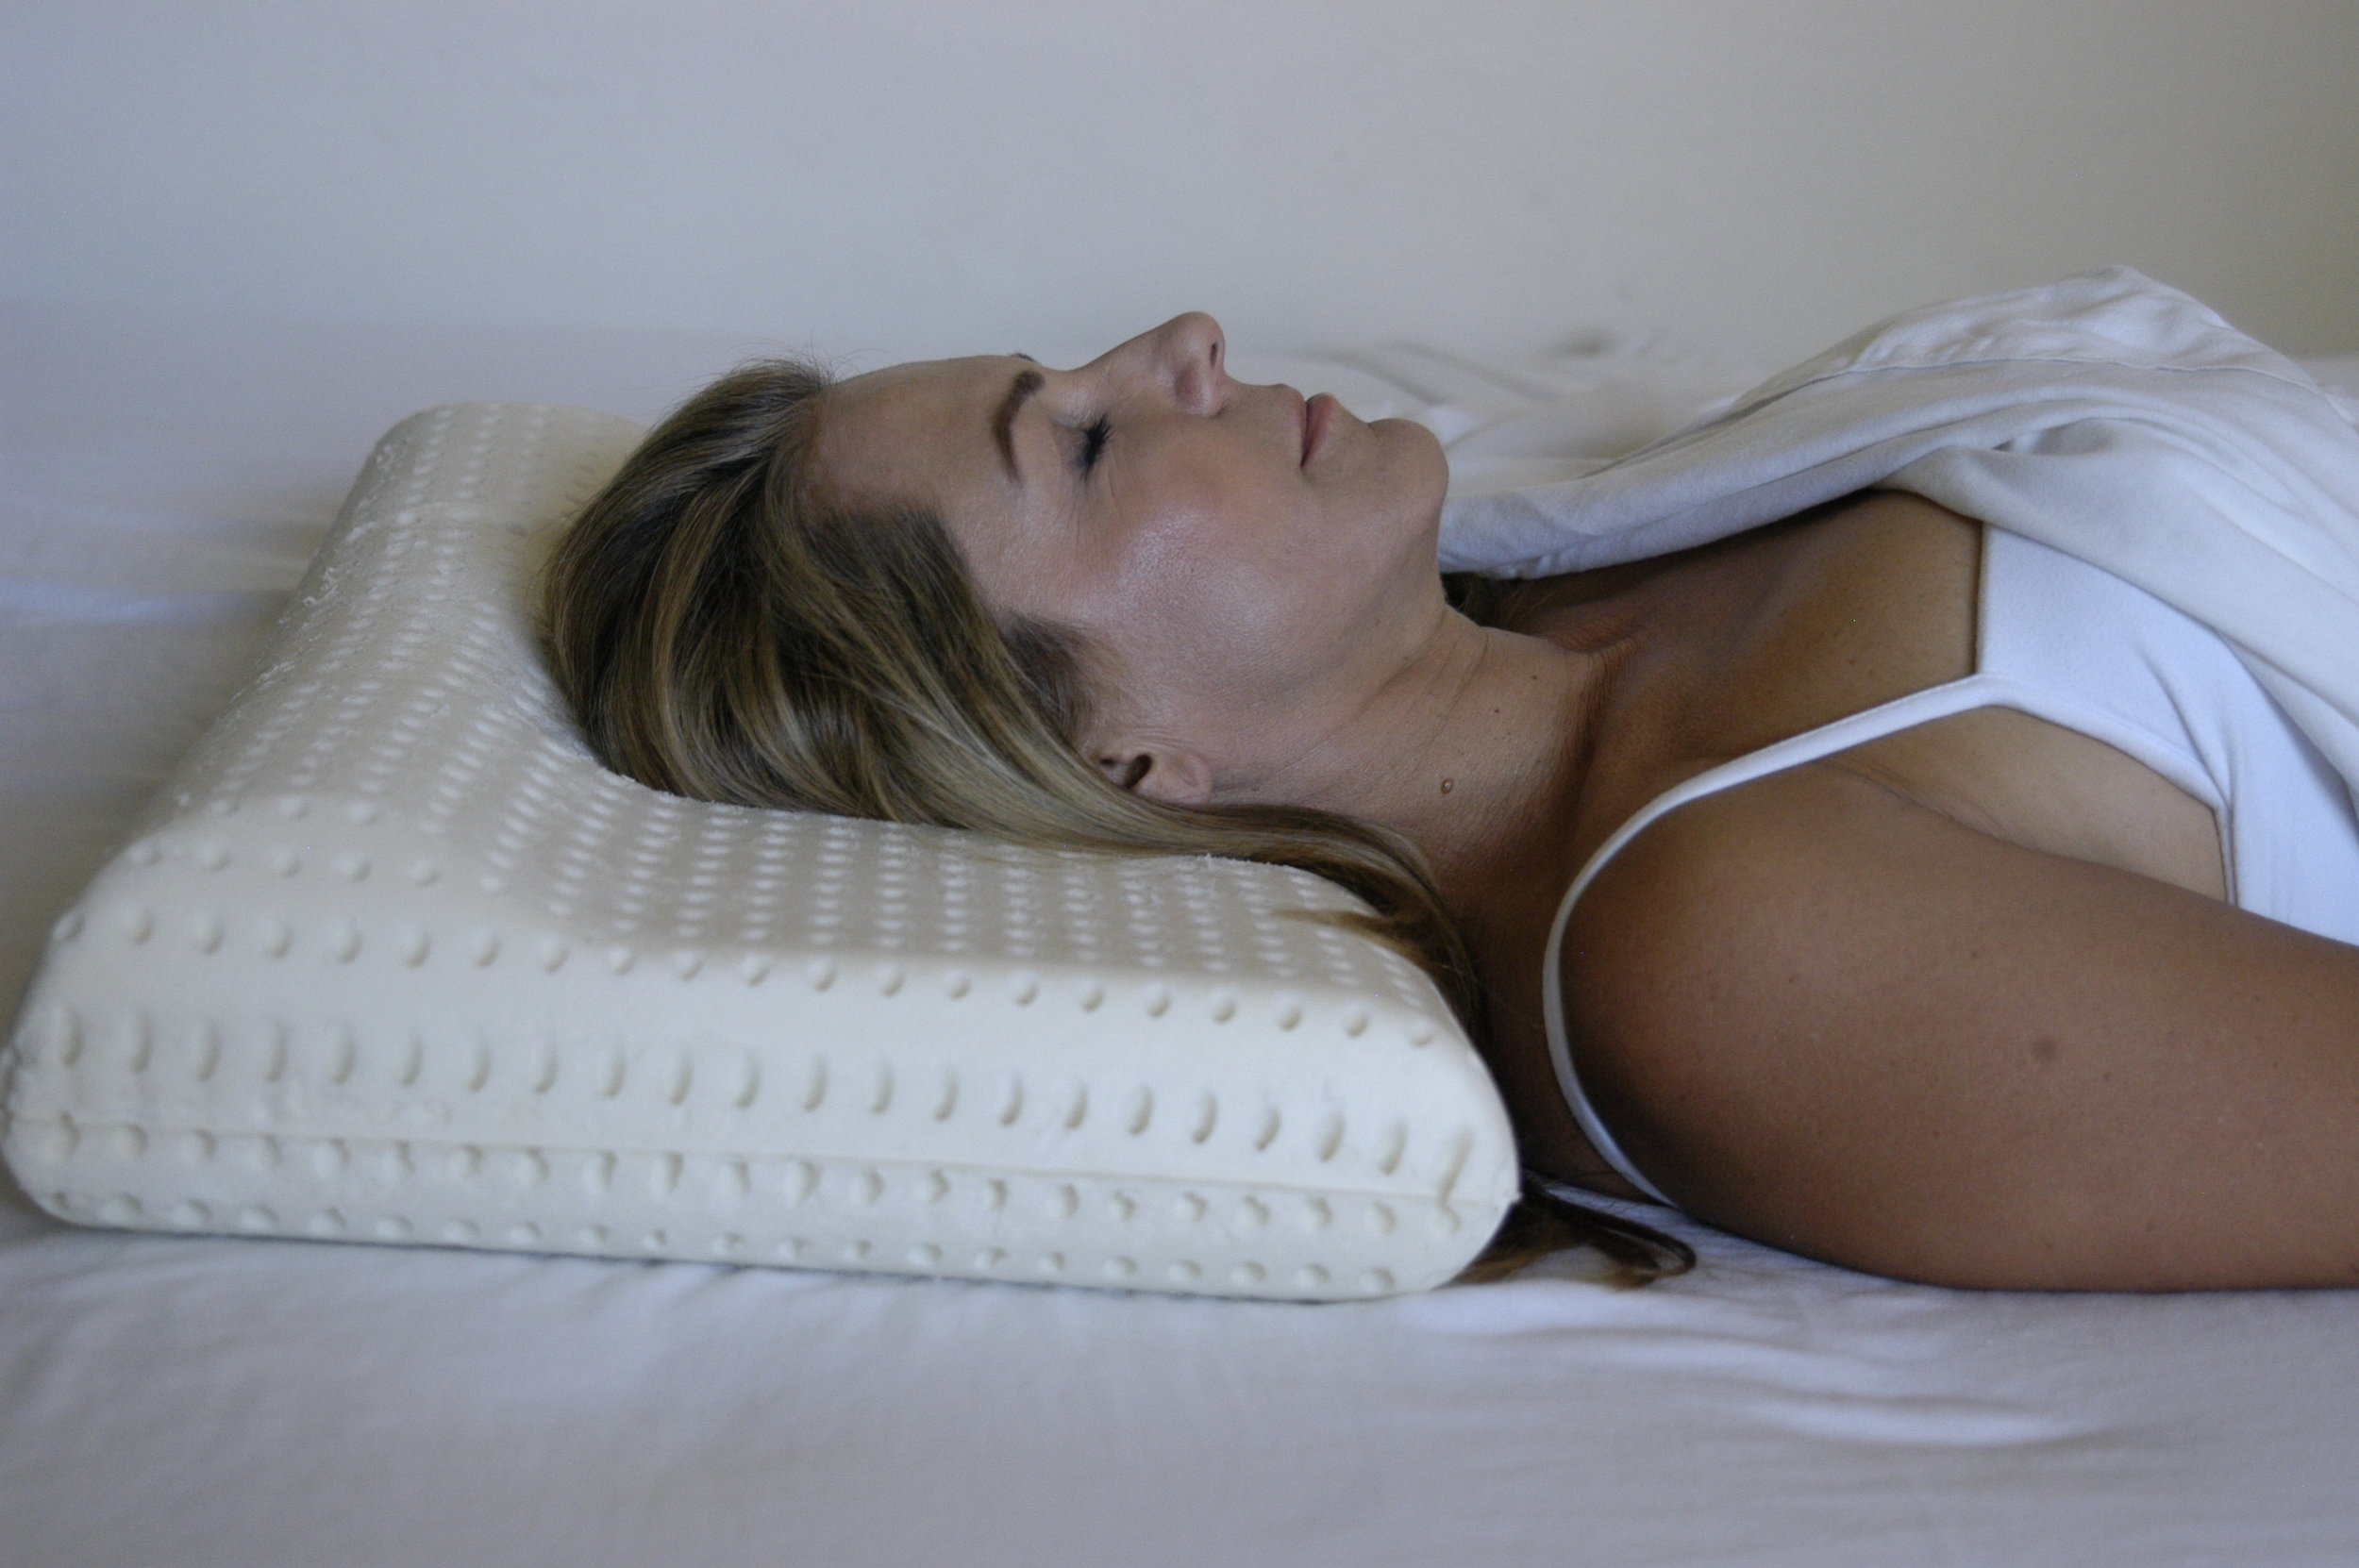 Key Features & Benefits.  Dermatologists recommend sleeping on your back to reduce  wrinkles .  Do you use a  CPAP machine ? Doctors recommend sleeping on your back for maximum comfortable.  Have you had a  recent surgery  such as knee replacement or breast augmentation?  Do you suffer from  acid reflux  and use a wedge pillow to sleep on your back?